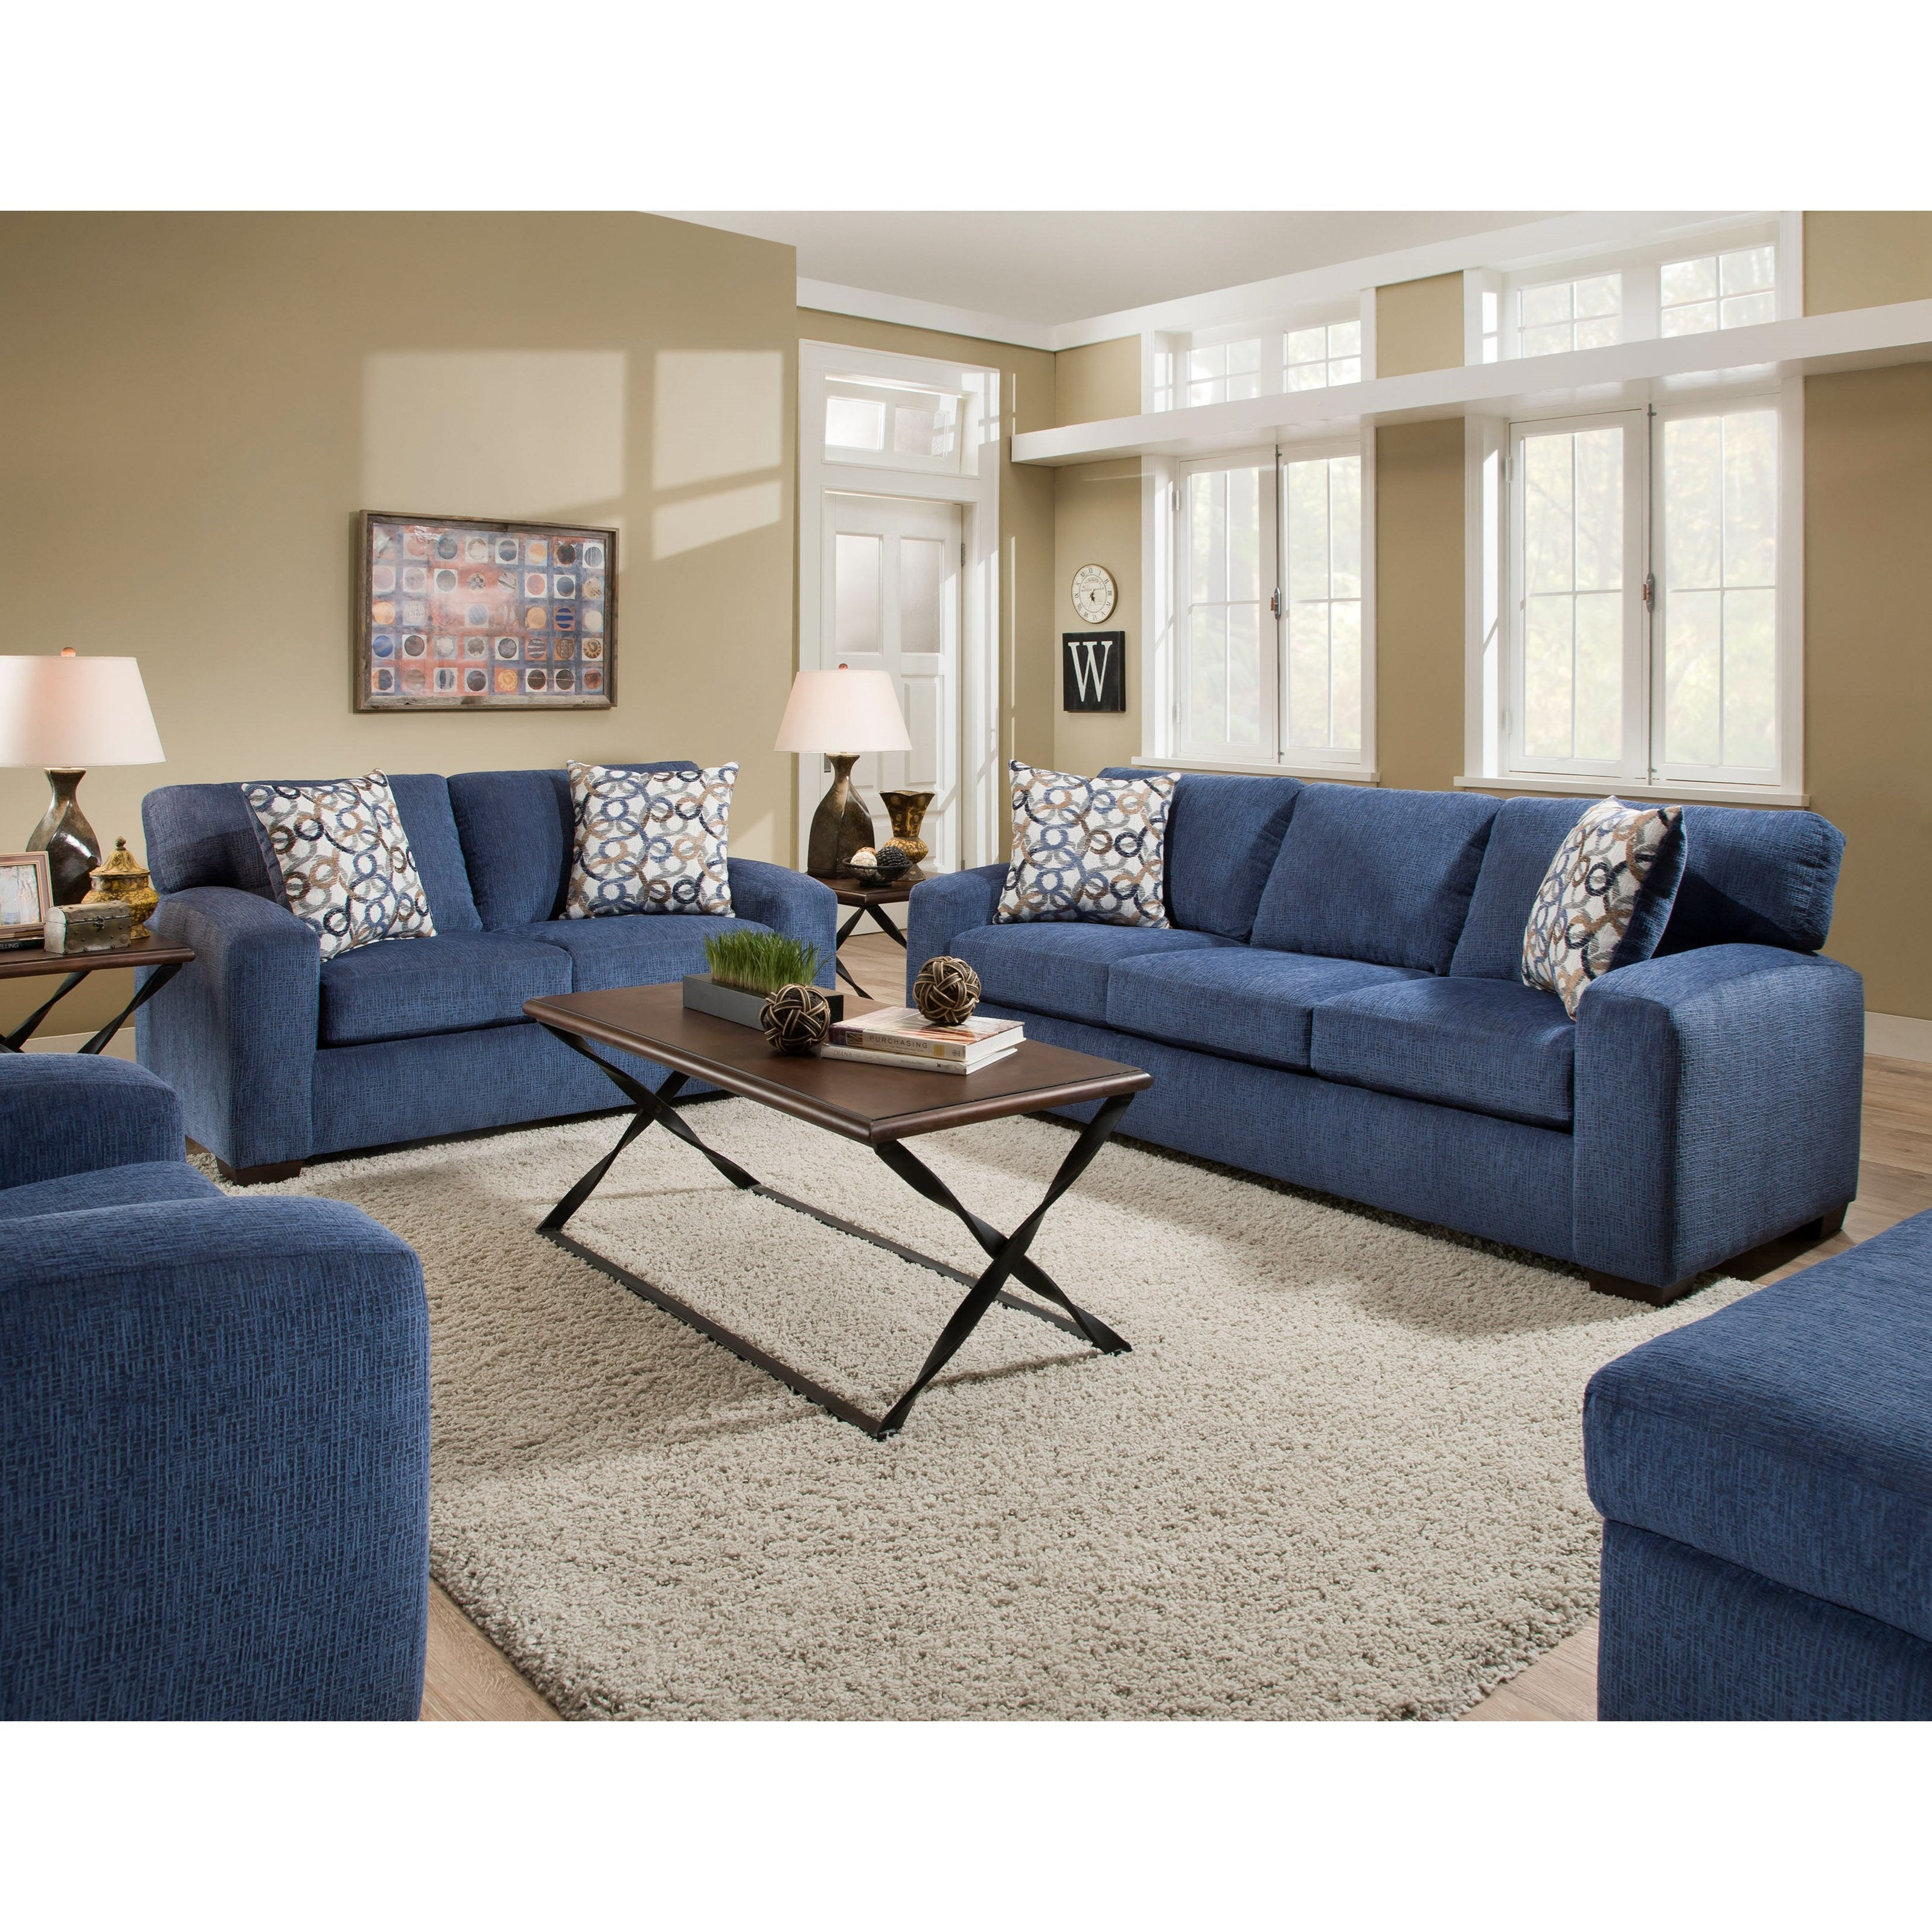 American Furniture 5250 Living Room Group Miskelly Furniture Stationary Living Room Groups